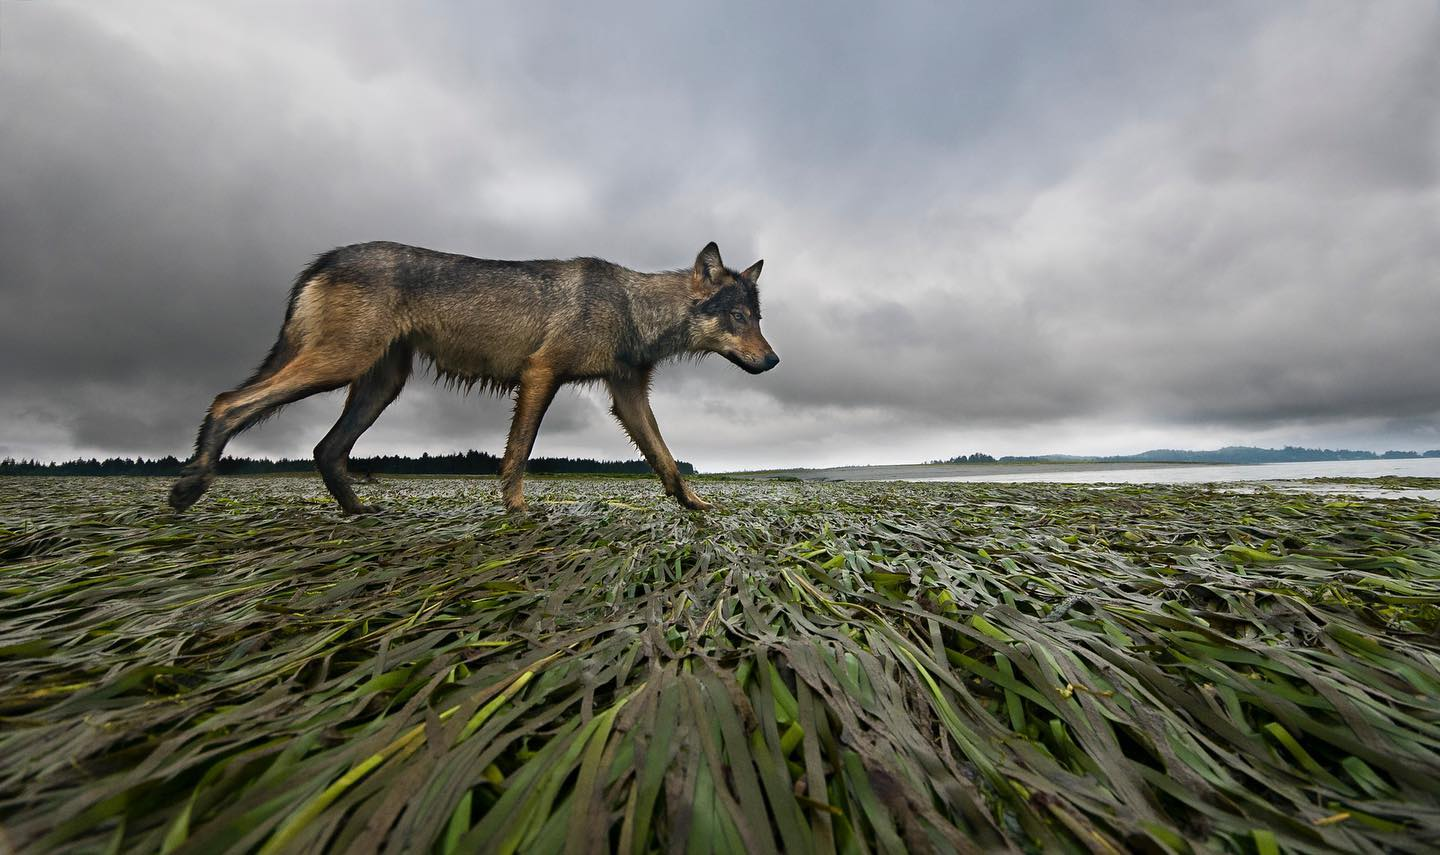 Wolf thin and brown walks across green rushes. Stormy grey sky looms in the background.